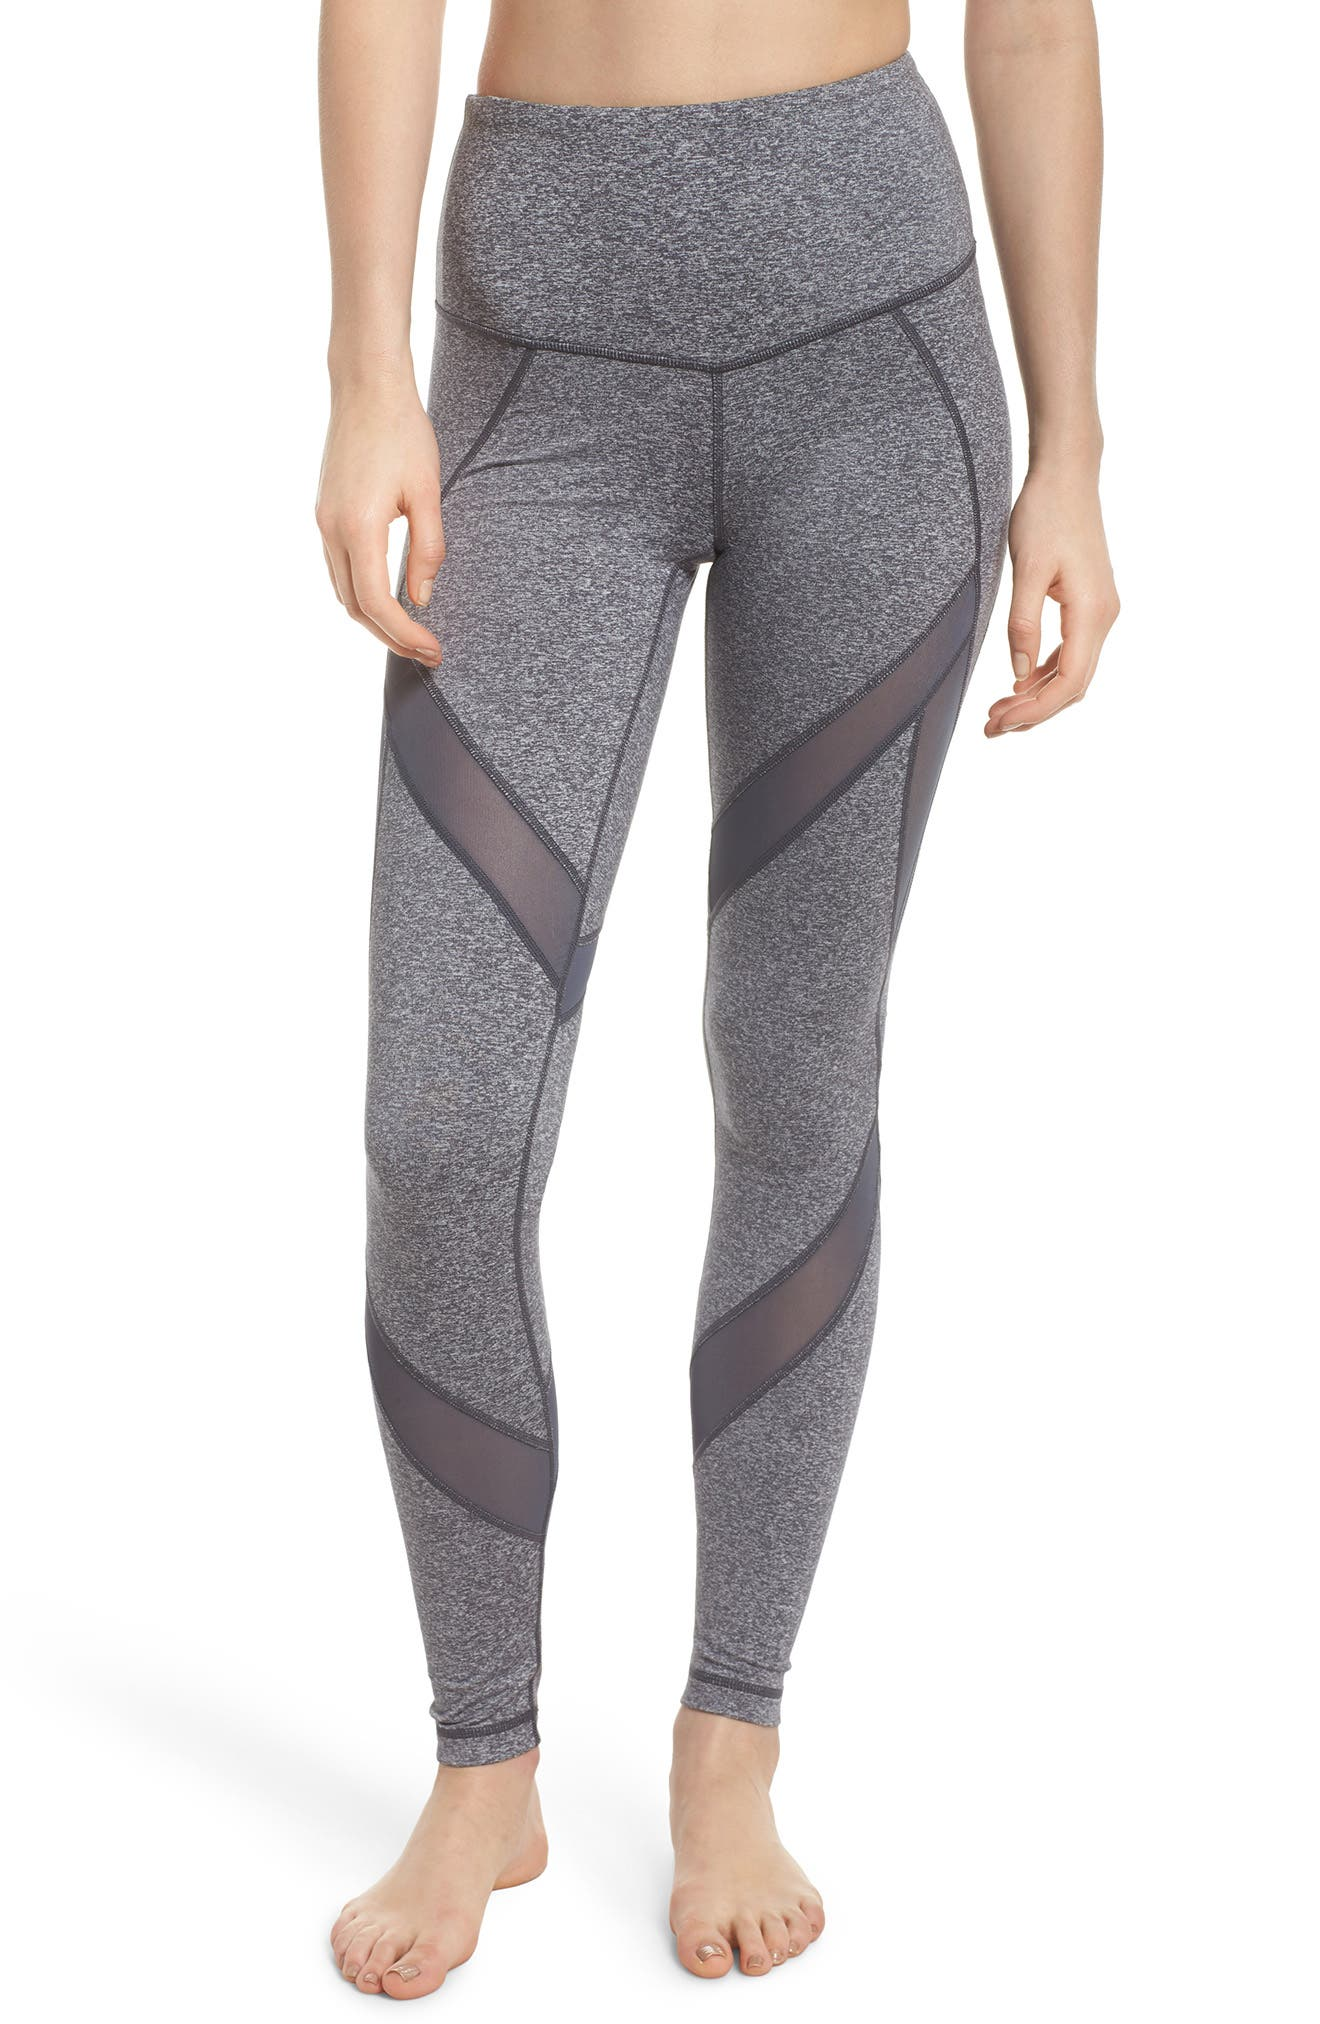 In Dreams High Waist Leggings,                             Main thumbnail 1, color,                             Grey Graphite Melange